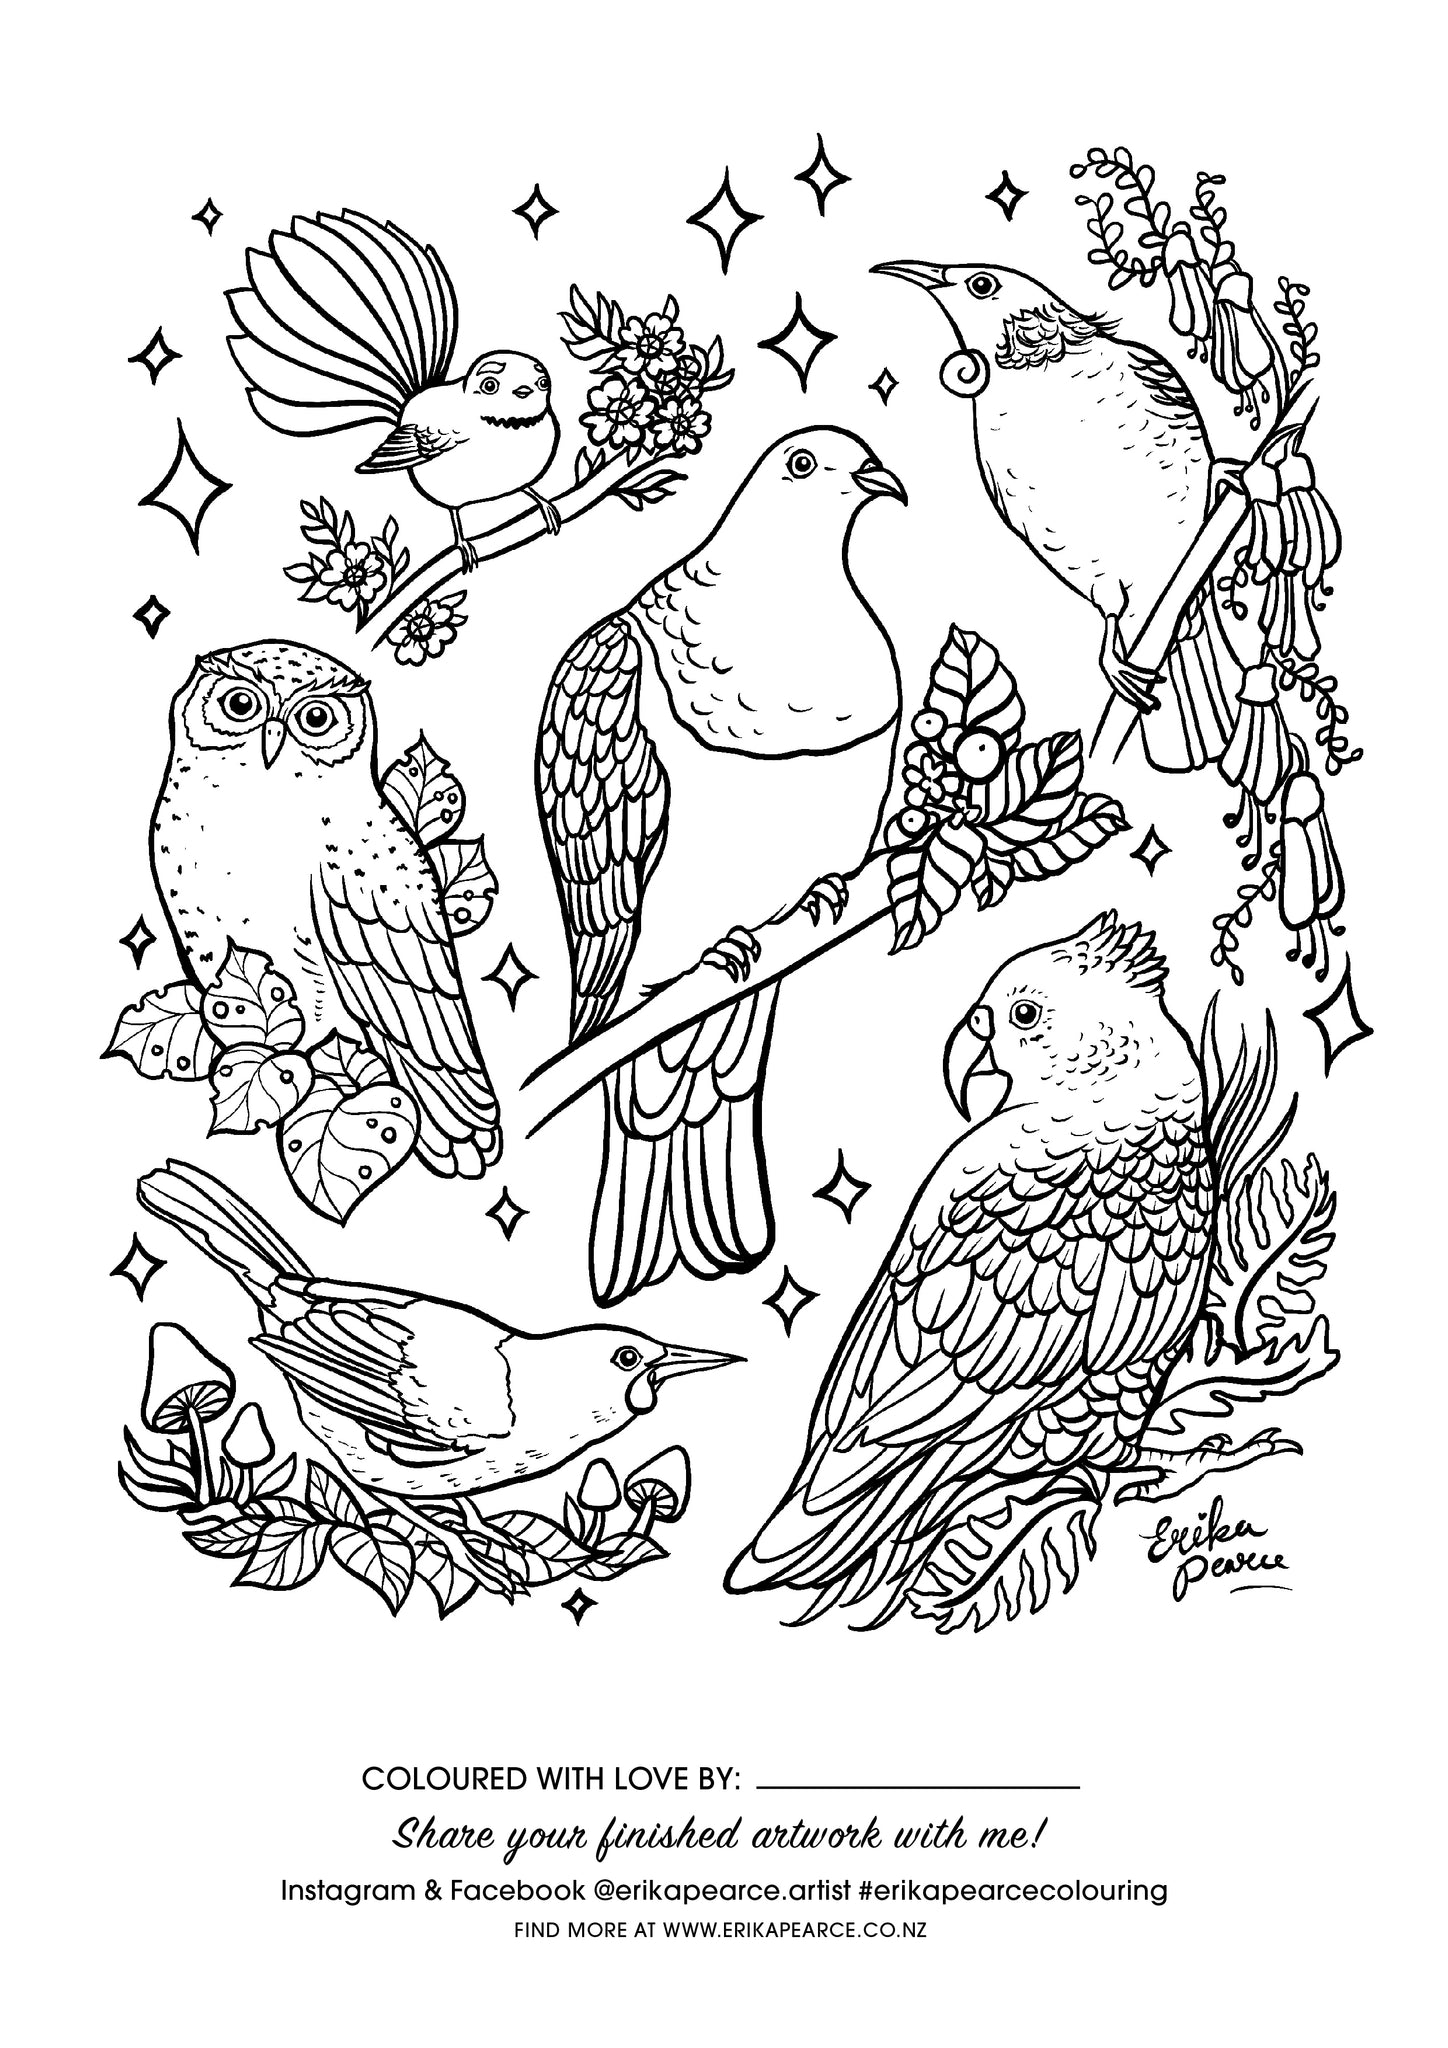 Erika Pearce Artist - FREE Colouring in pages - NZ Birds